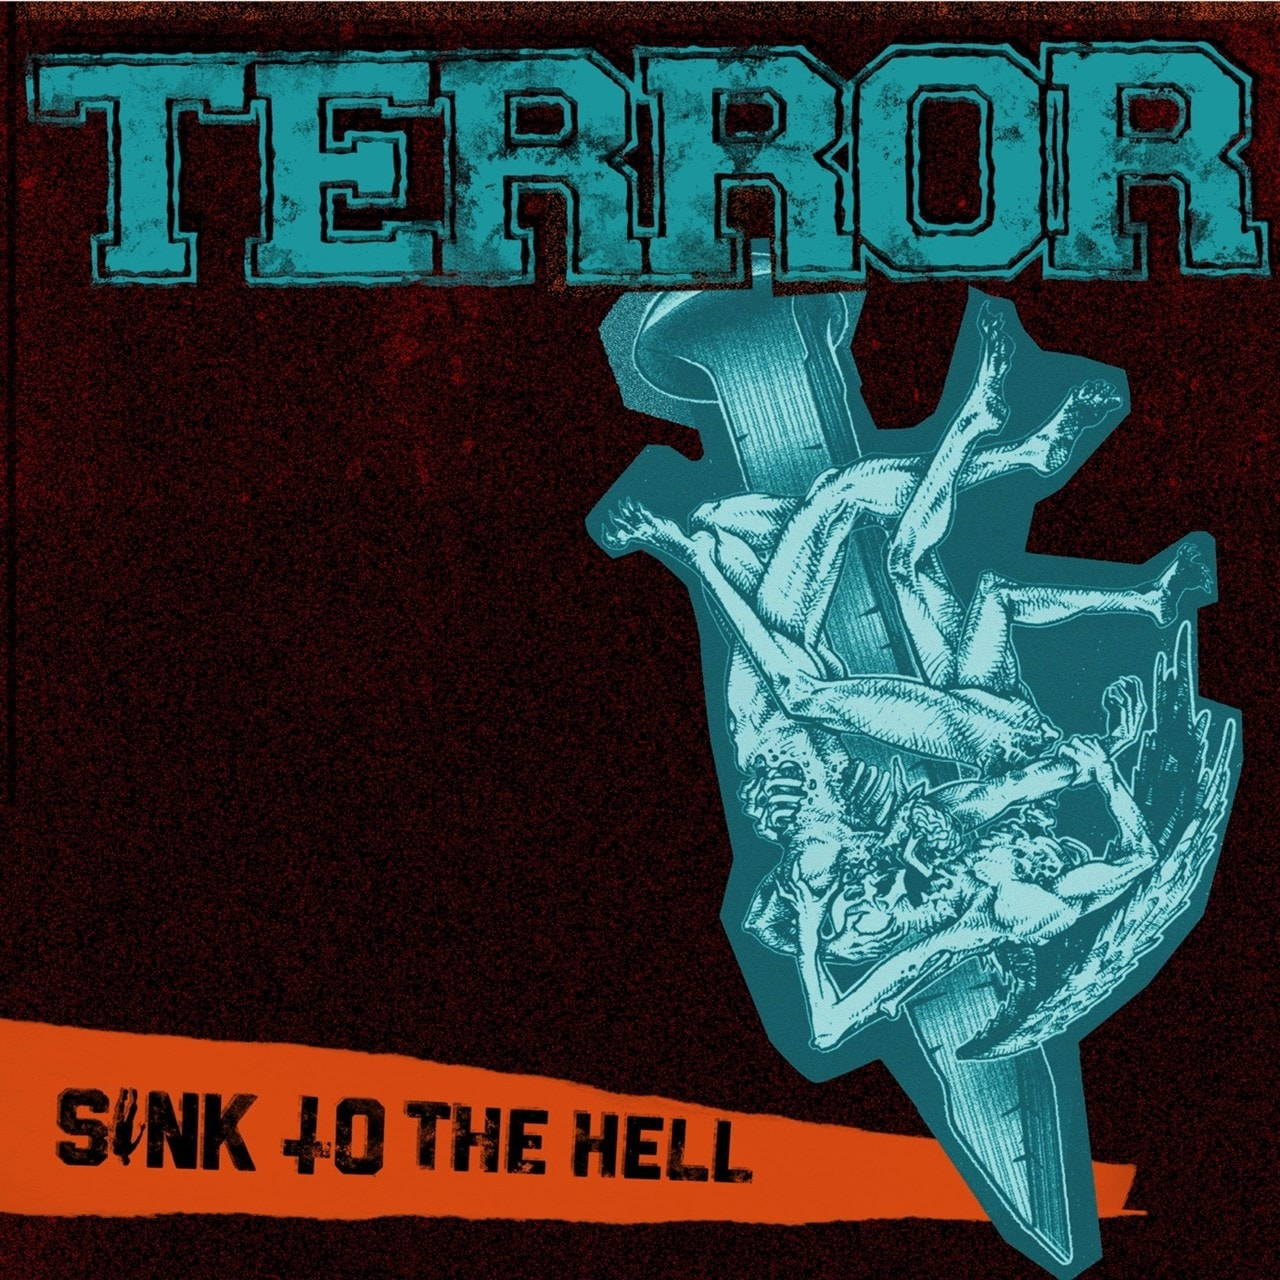 Sink to the Hell - 1